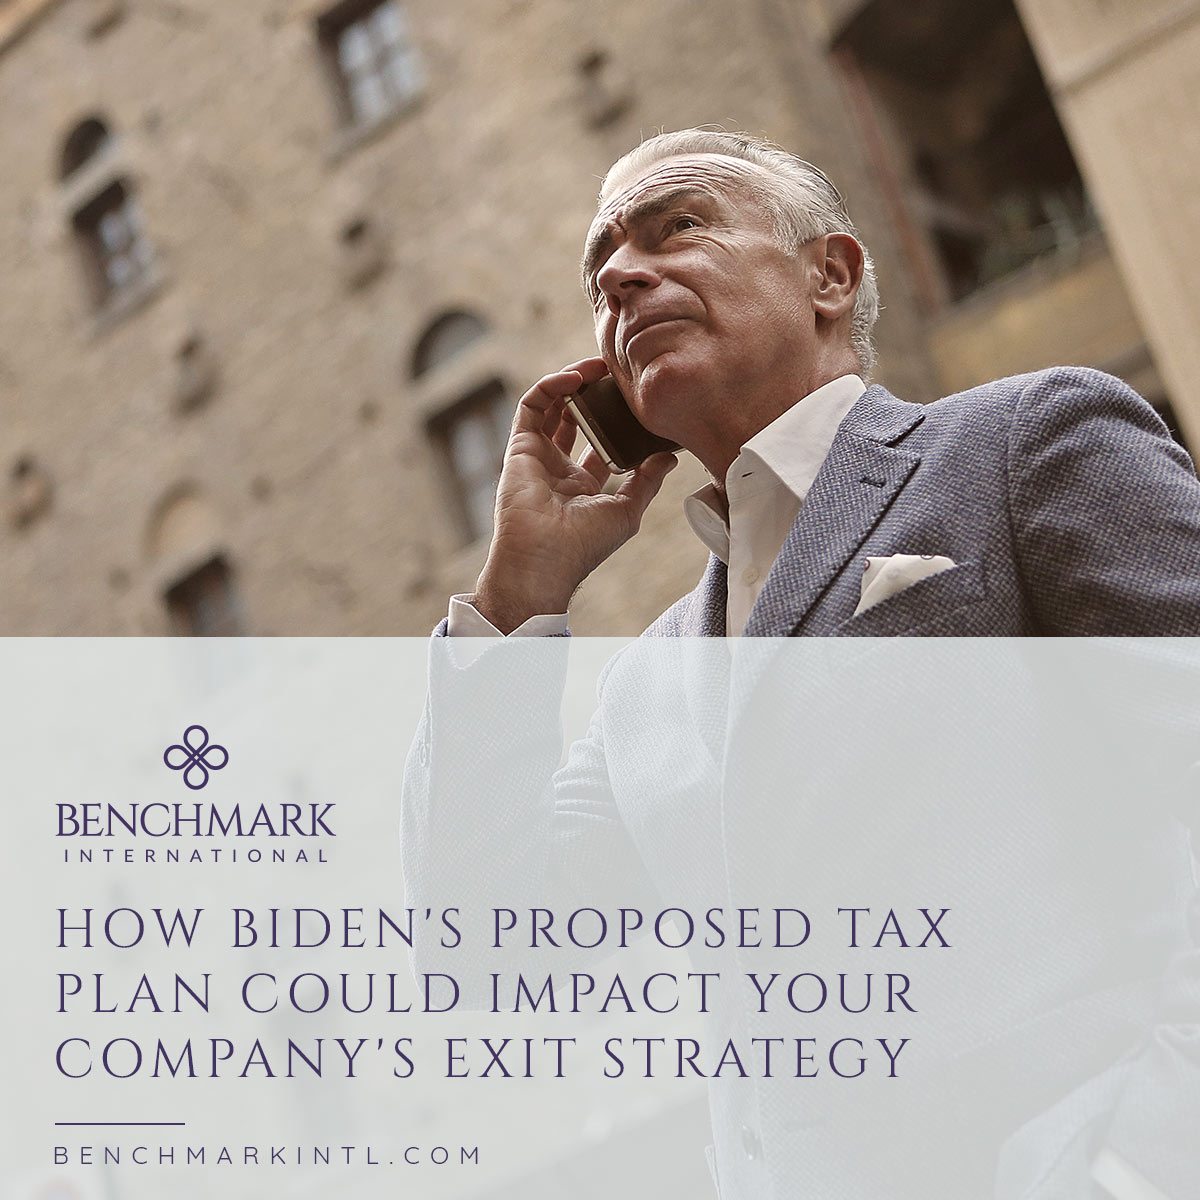 How_Bidens_Tax_Plan_Could_Impact_Your_Companys_Exit_Strategy__Social